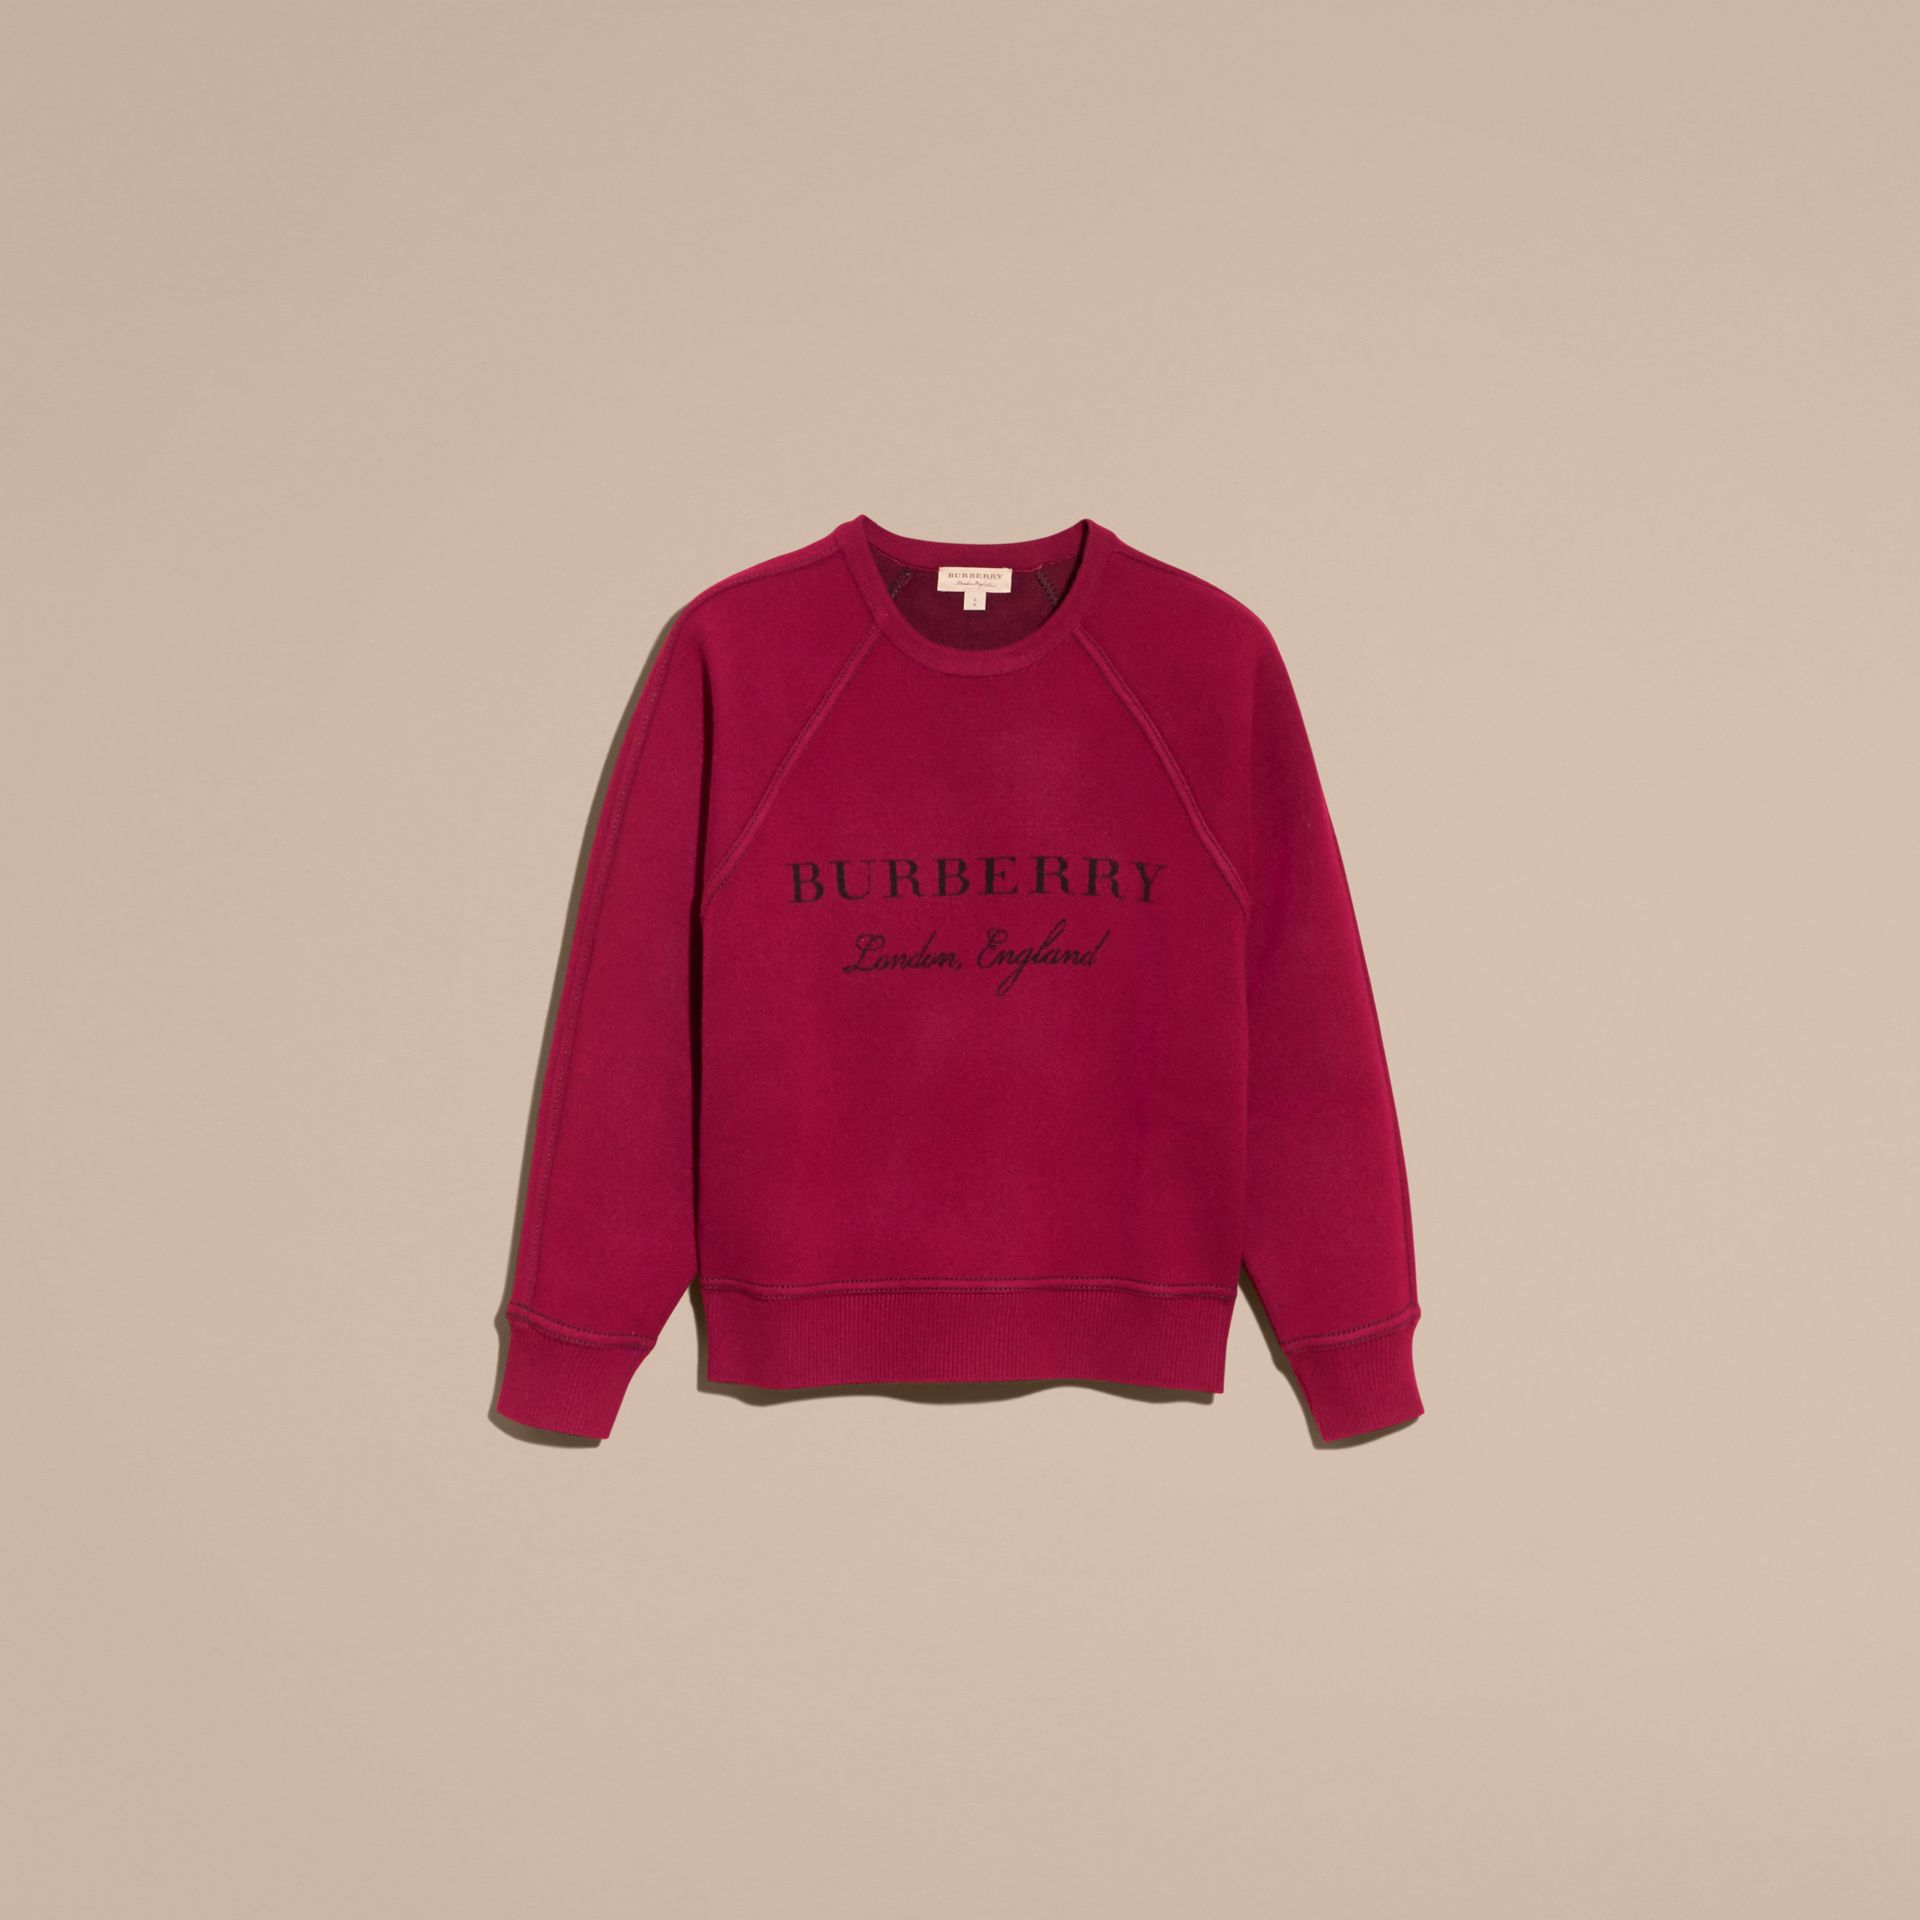 Topstitch Detail Wool Cashmere Blend Sweater in Burgundy - Women | Burberry - gallery image 4